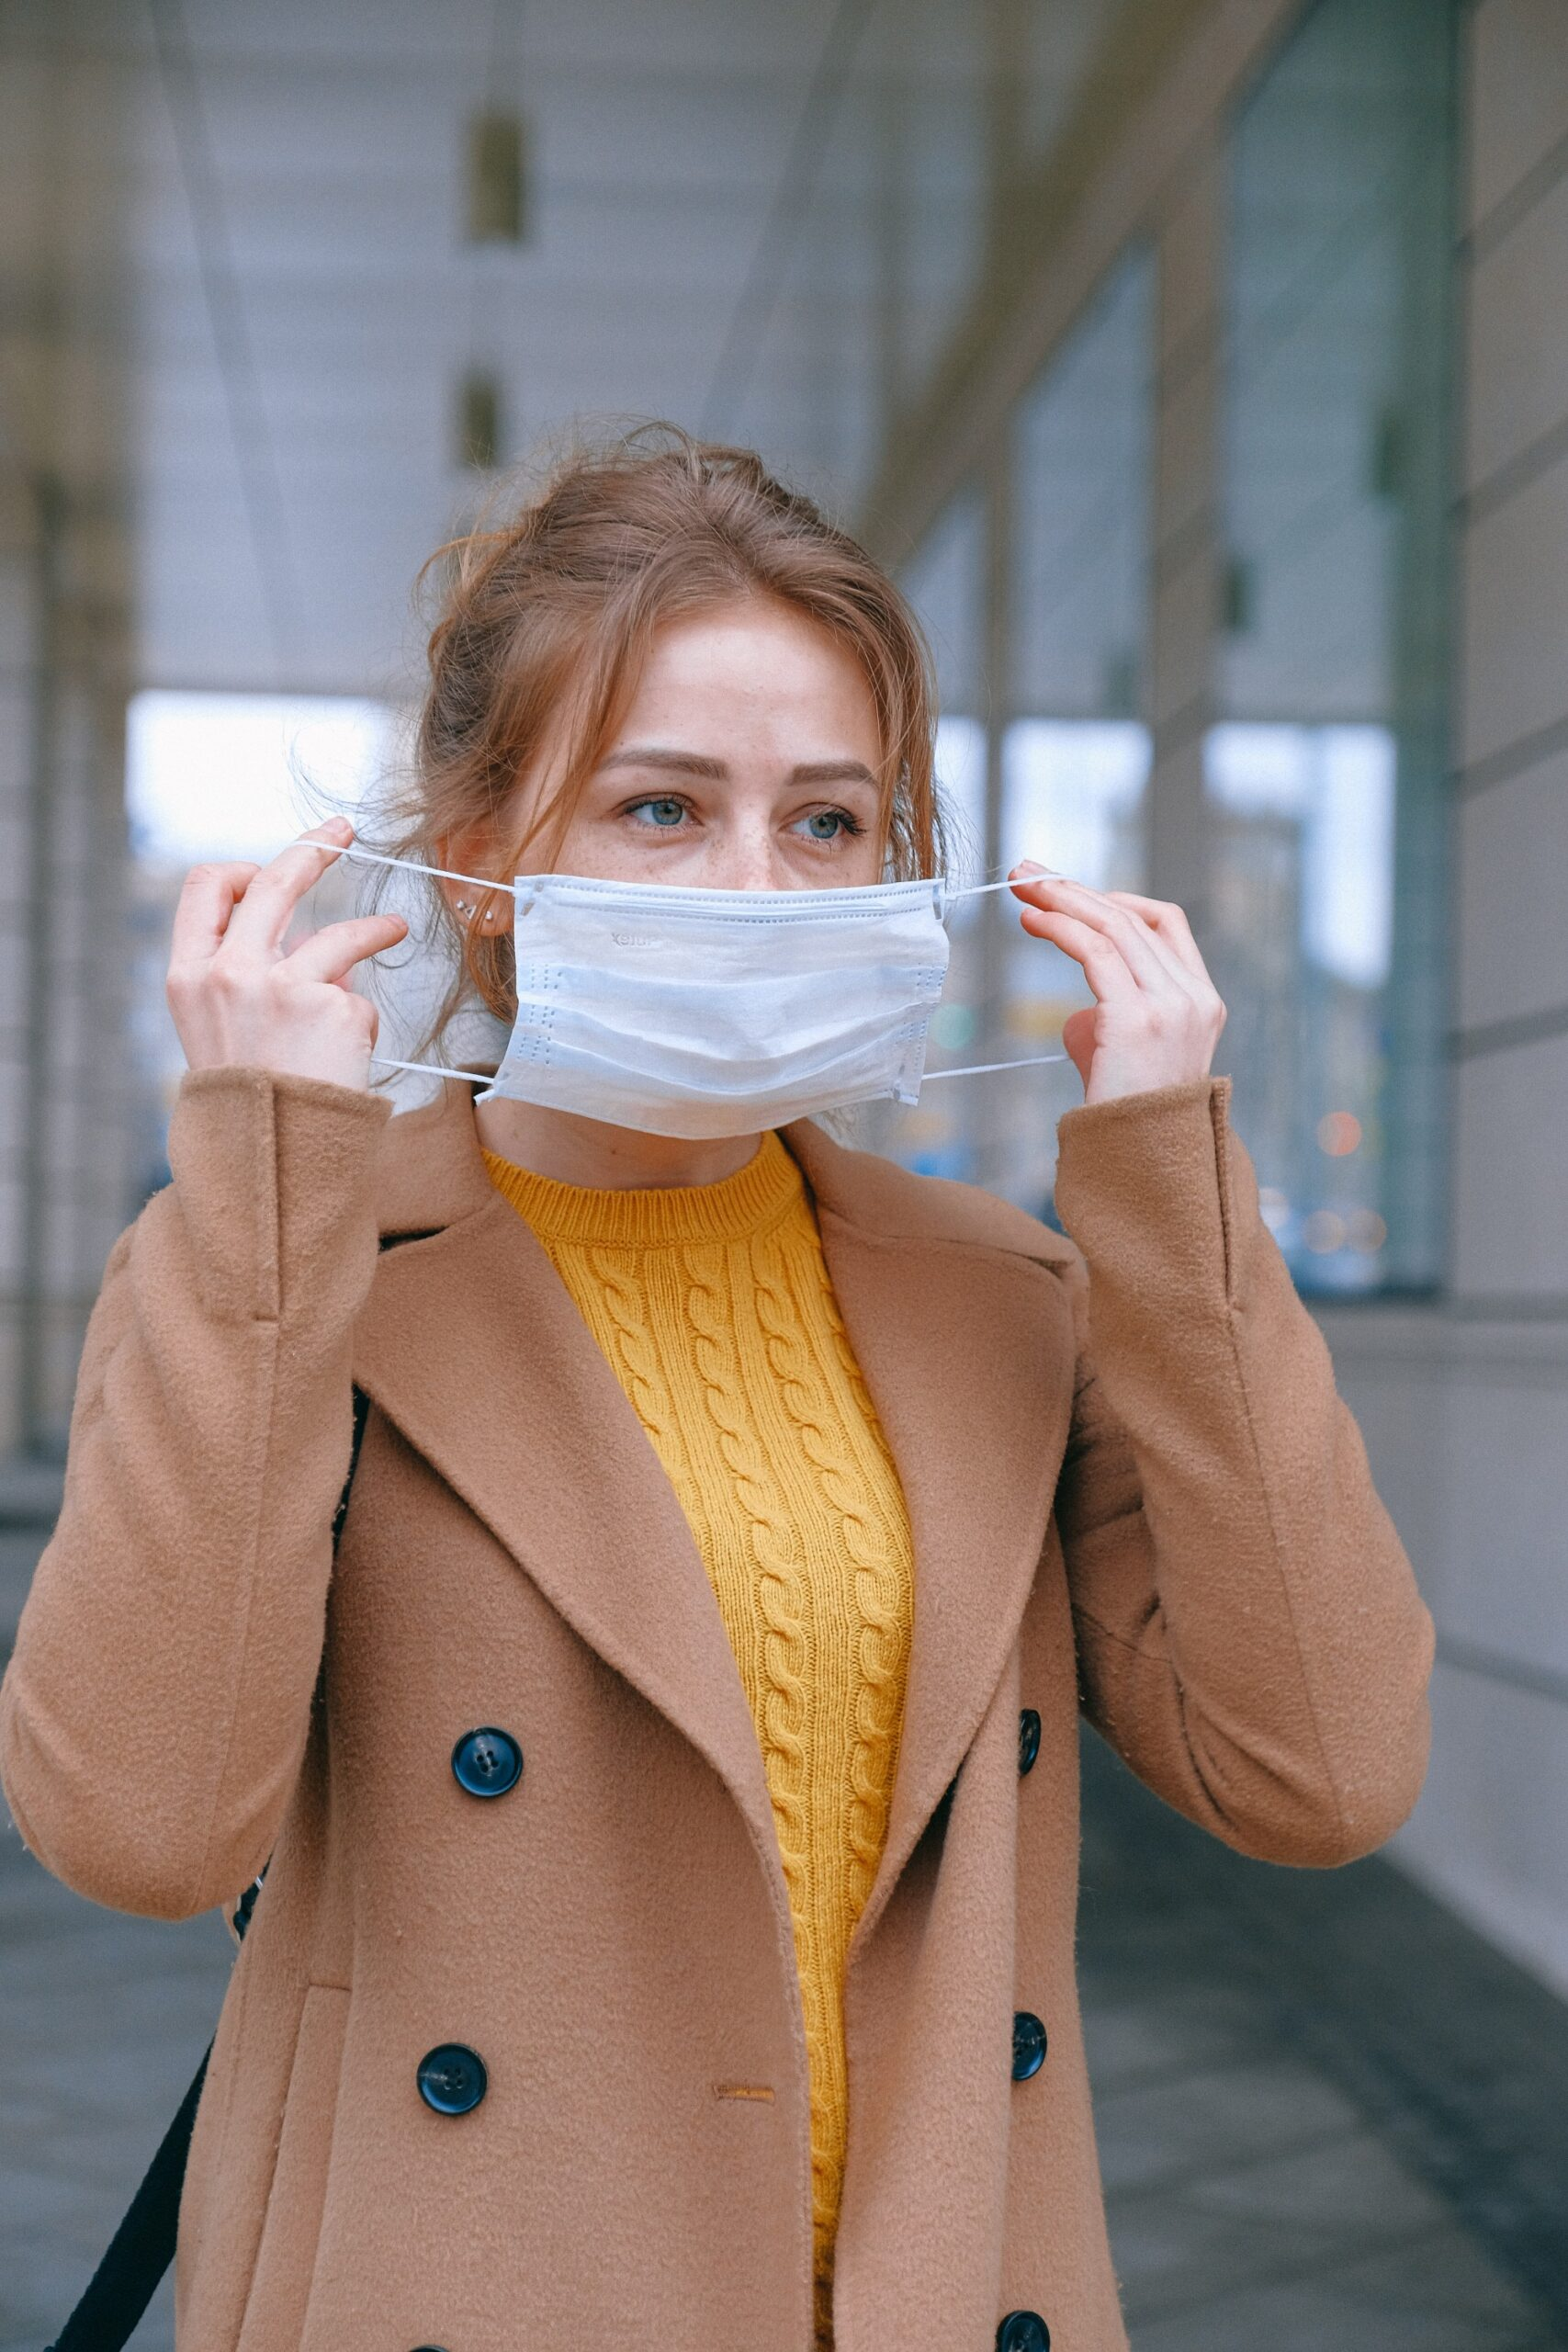 HOW TO PREVENT ORAL & SKIN PROBLEMS FROM MASK-WEARING